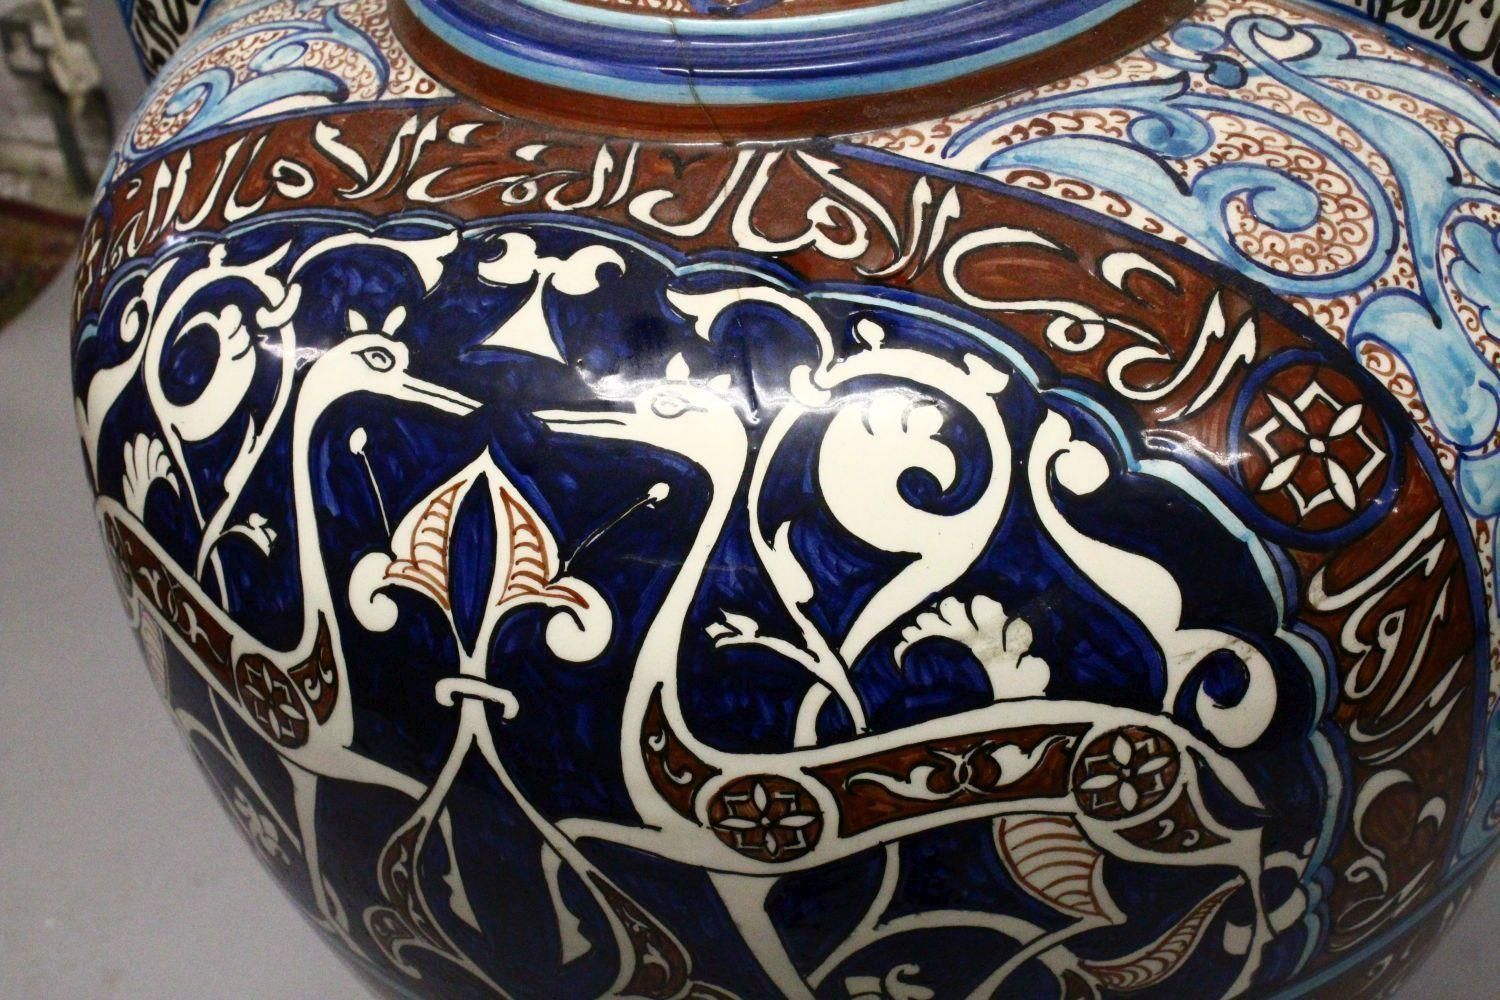 A HUGE 19TH CENTURY ISLAMIC HISPANO MORESQUE POTTERY ALHAMBRA STYLE POTTERY VASE & STAND, possibly - Image 3 of 10